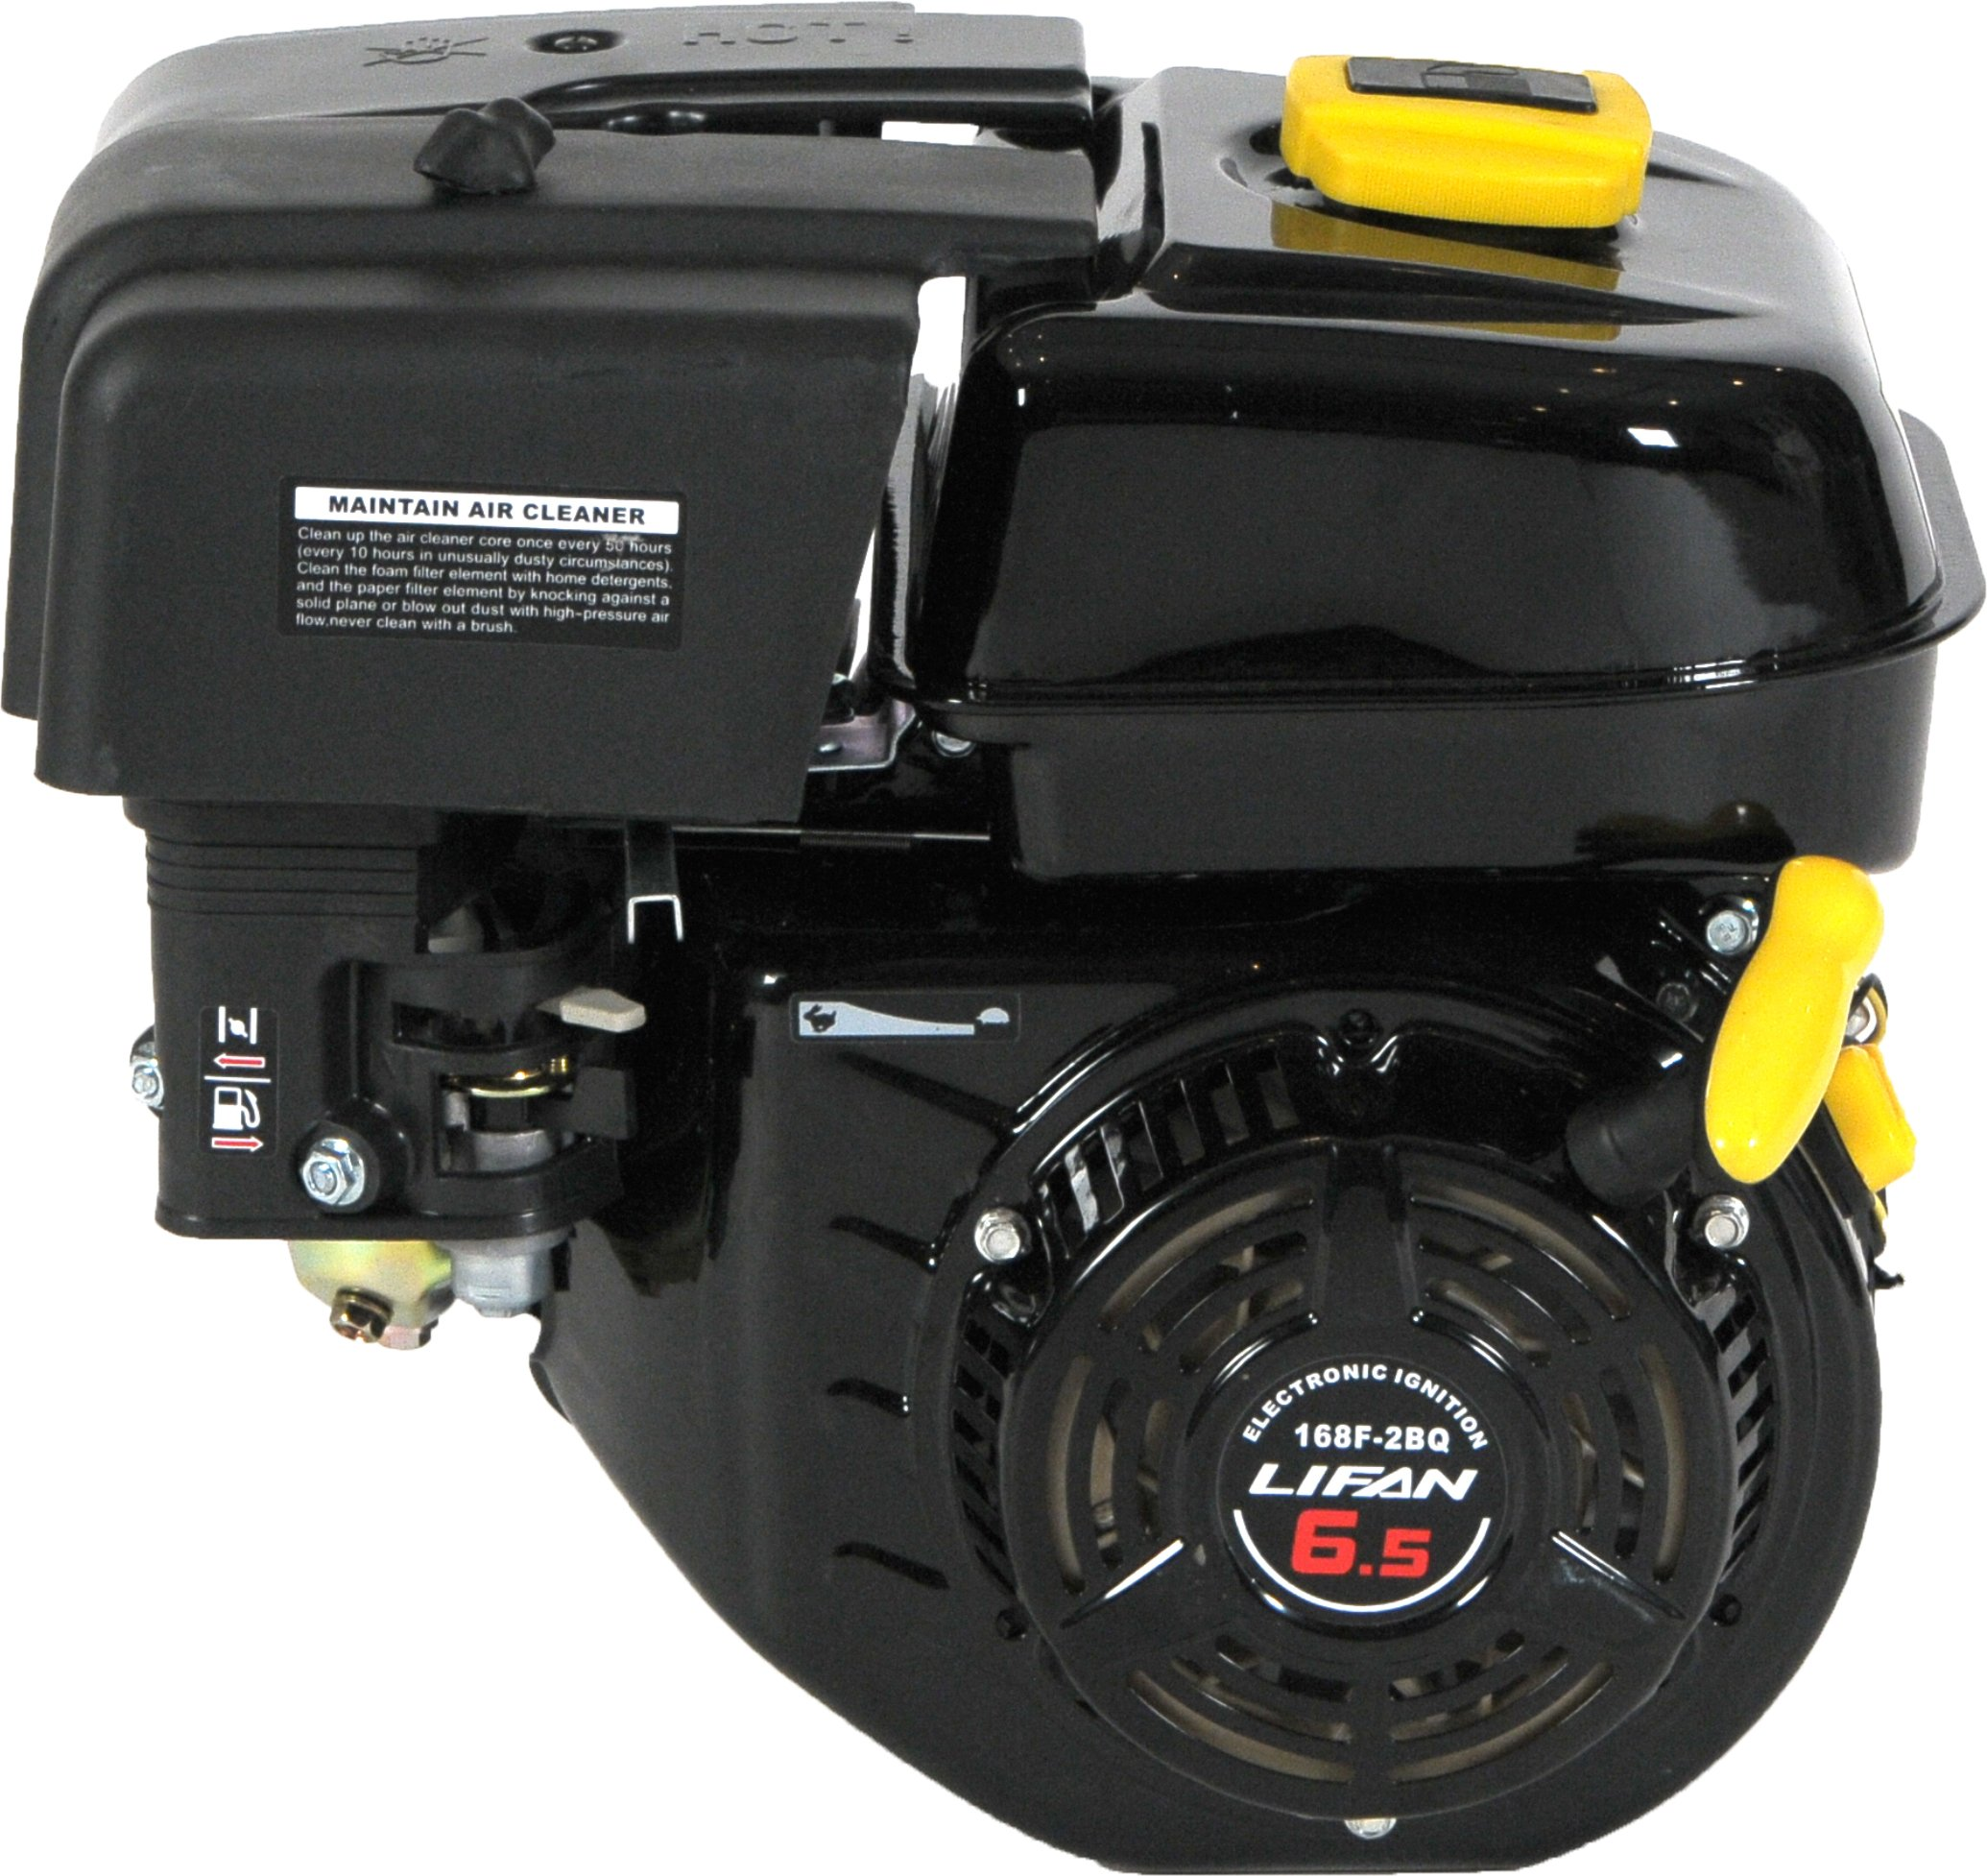 Lifan LF 168F-2BDQ 6-1/2 HP 196cc 4-Stroke OHV Industrial Grade Gas Engine with Eletric Start and Universal Mounting Pattern by Lifan